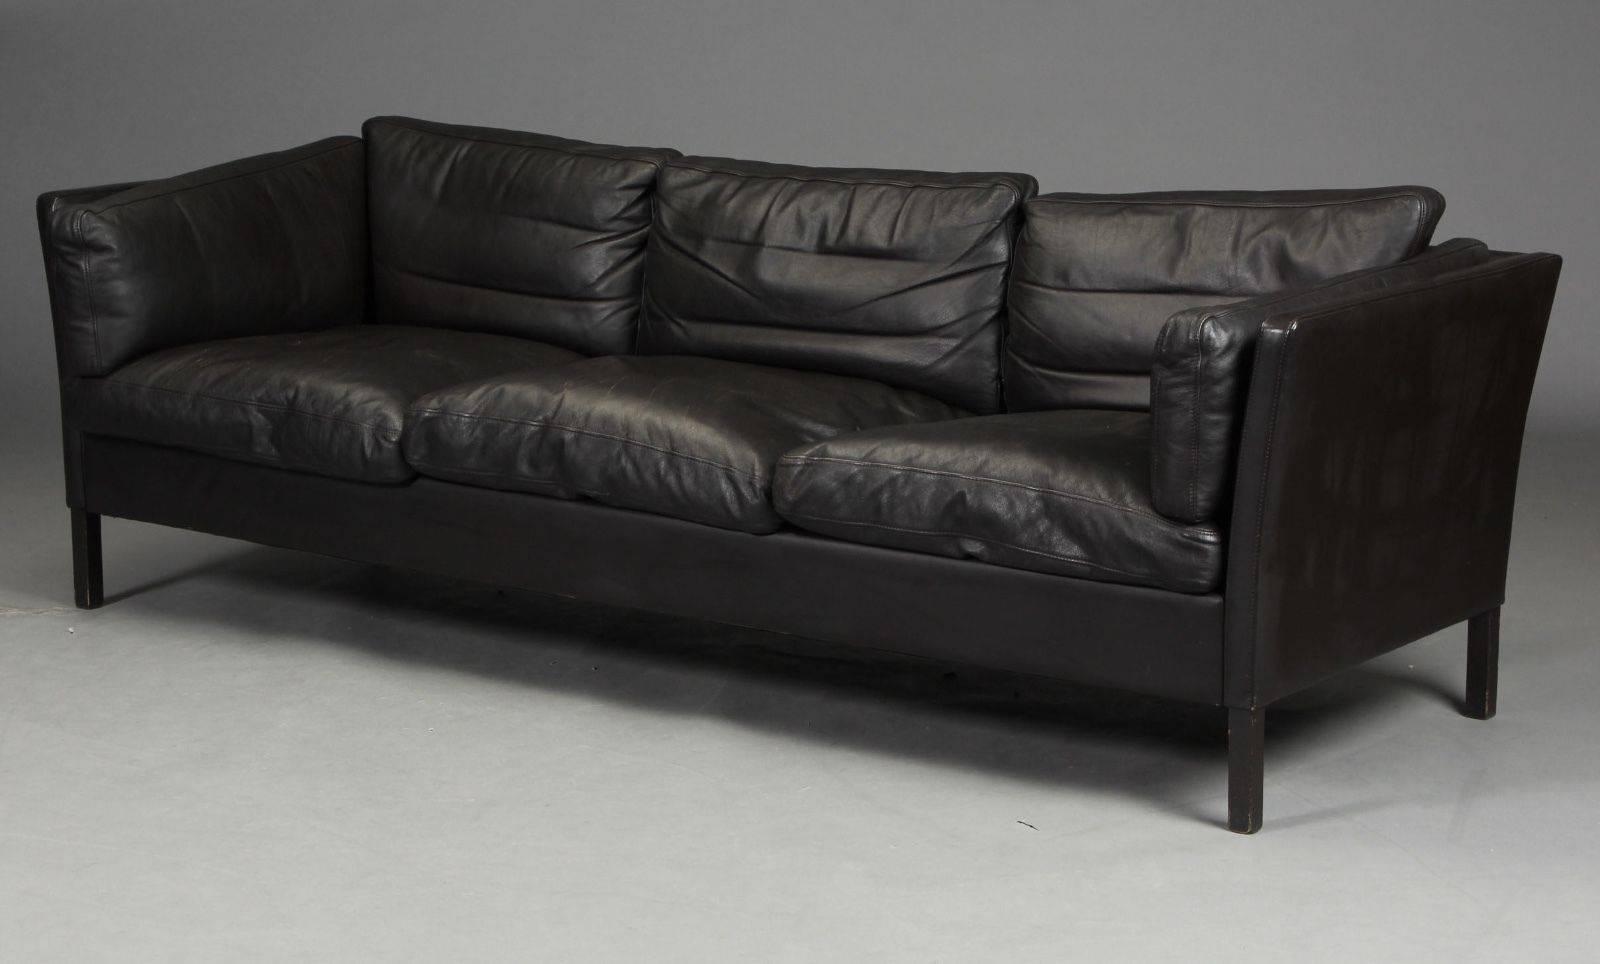 Vintage Danish Borge Mogensen Style 3 Seater Leather Sofa 70S throughout Danish Leather Sofas (Image 14 of 15)